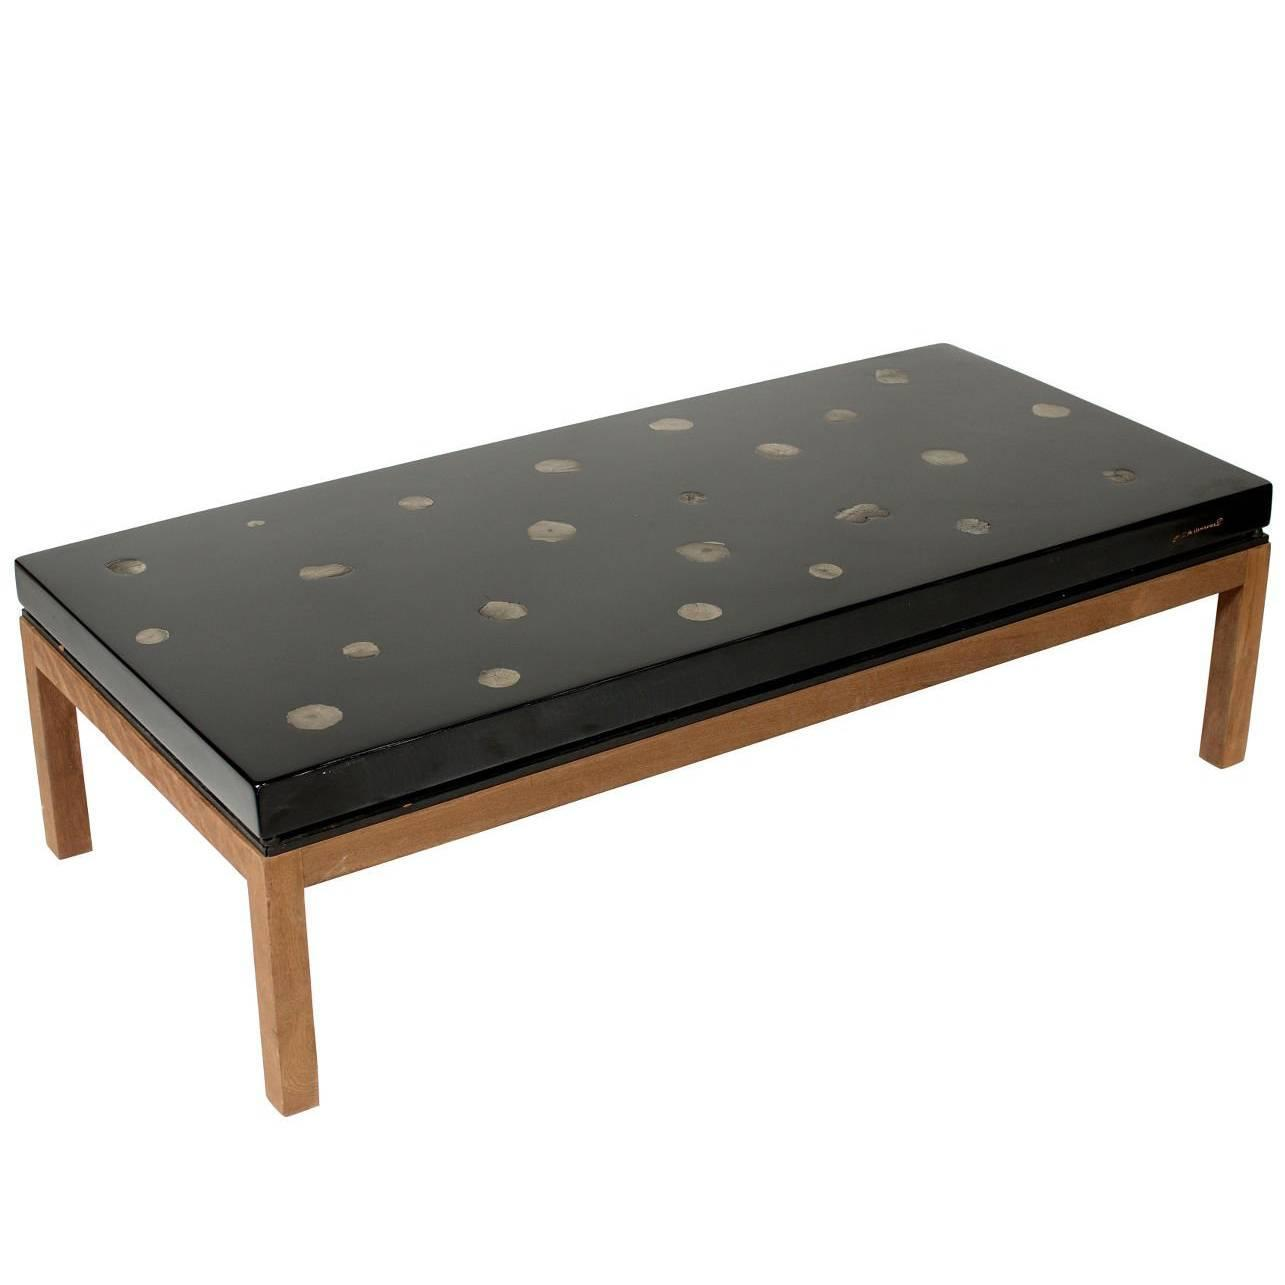 Coffee Table By E Allemeersch Black Resin And Marcassite For Sale At 1stdibs